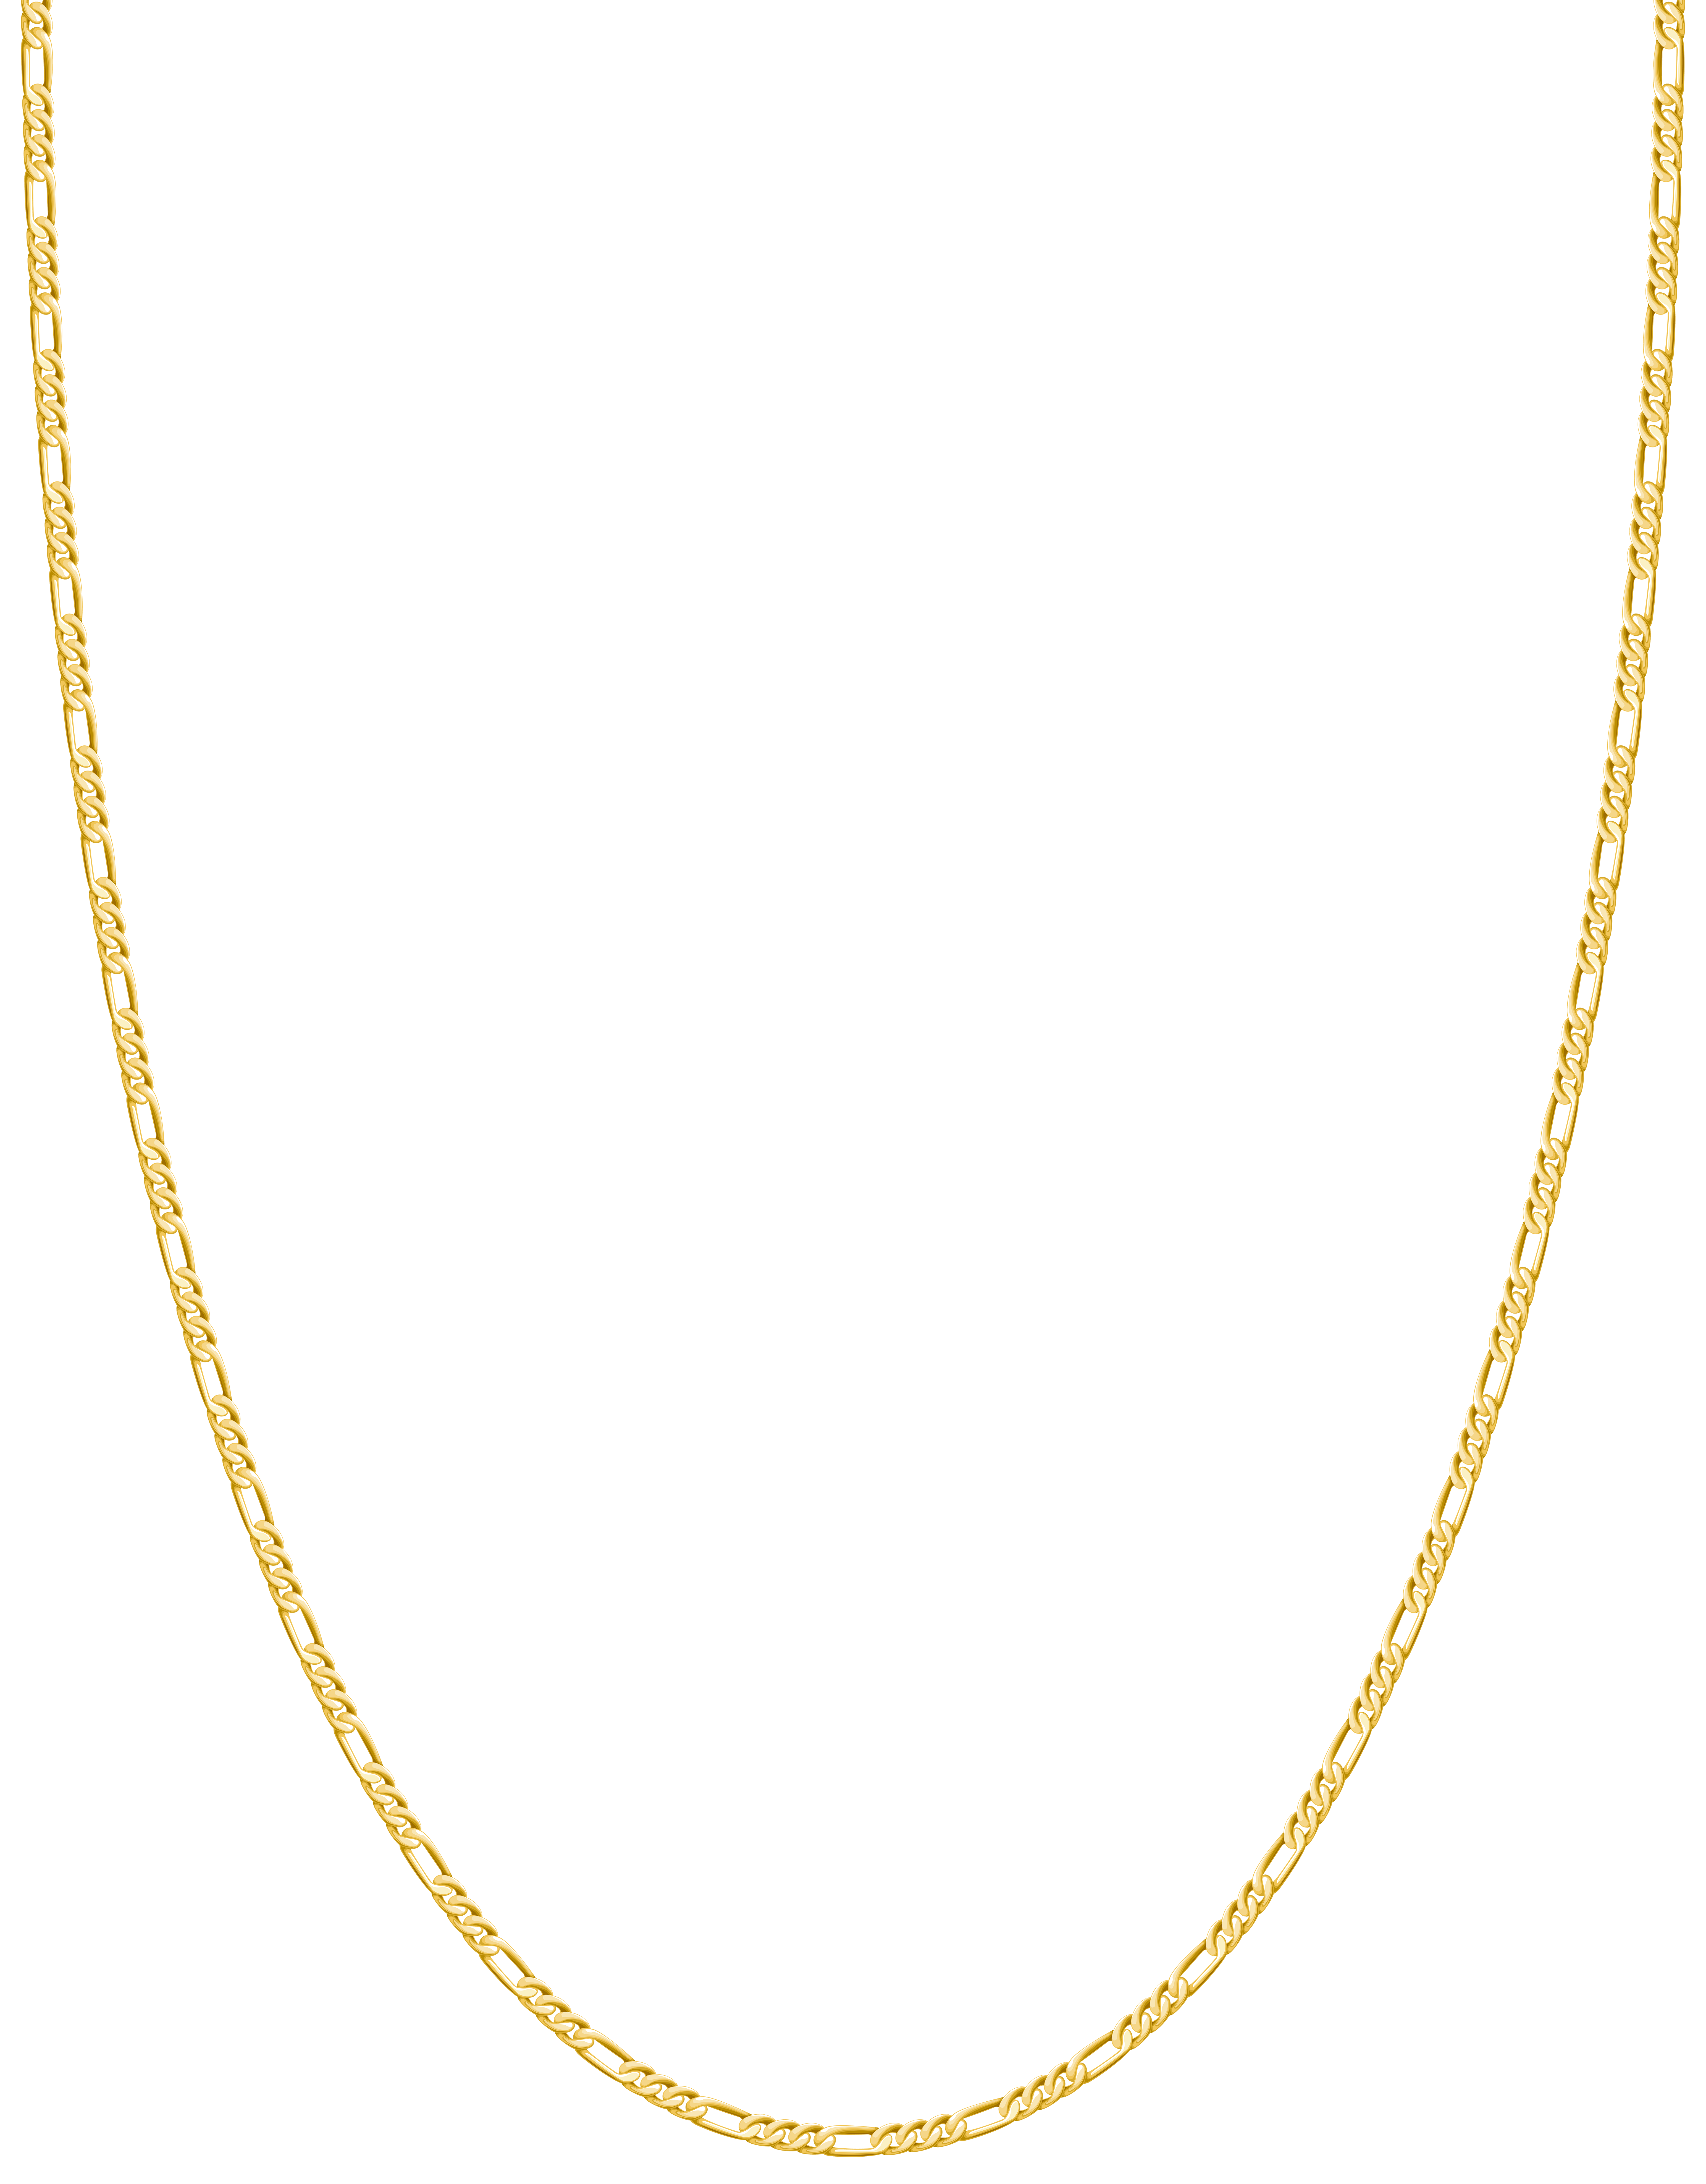 Golden Chain Png Transparent Clip Art Image Gallery Yopriceville High Quality Images And Transparent Png Free Clipart Art Images Free Clip Art Clip Art